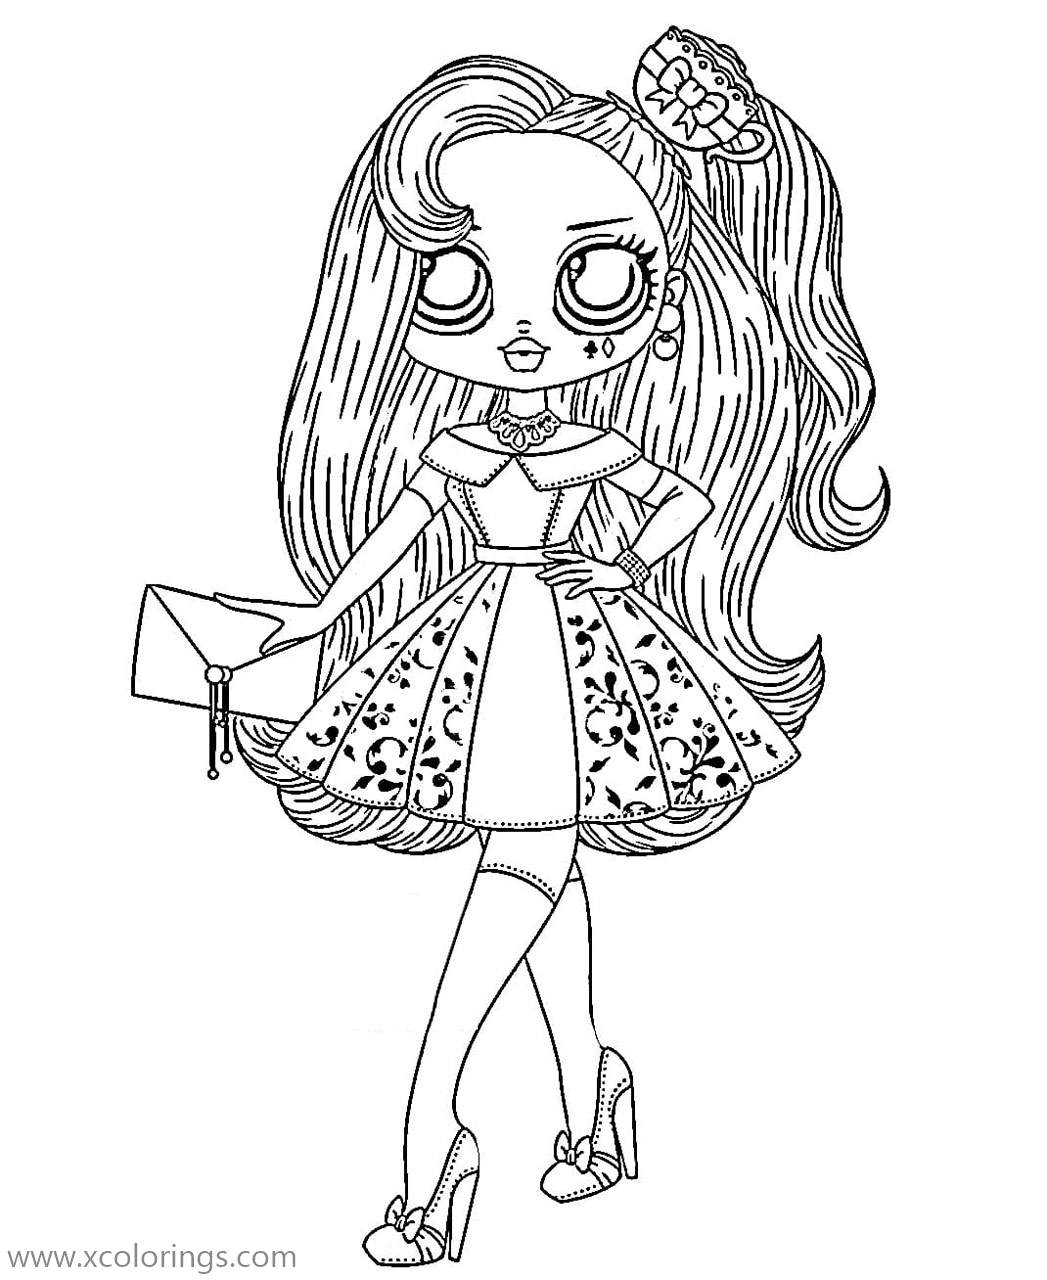 Real Lady From Lol Omg Dolls Coloring Pages Xcolorings Com